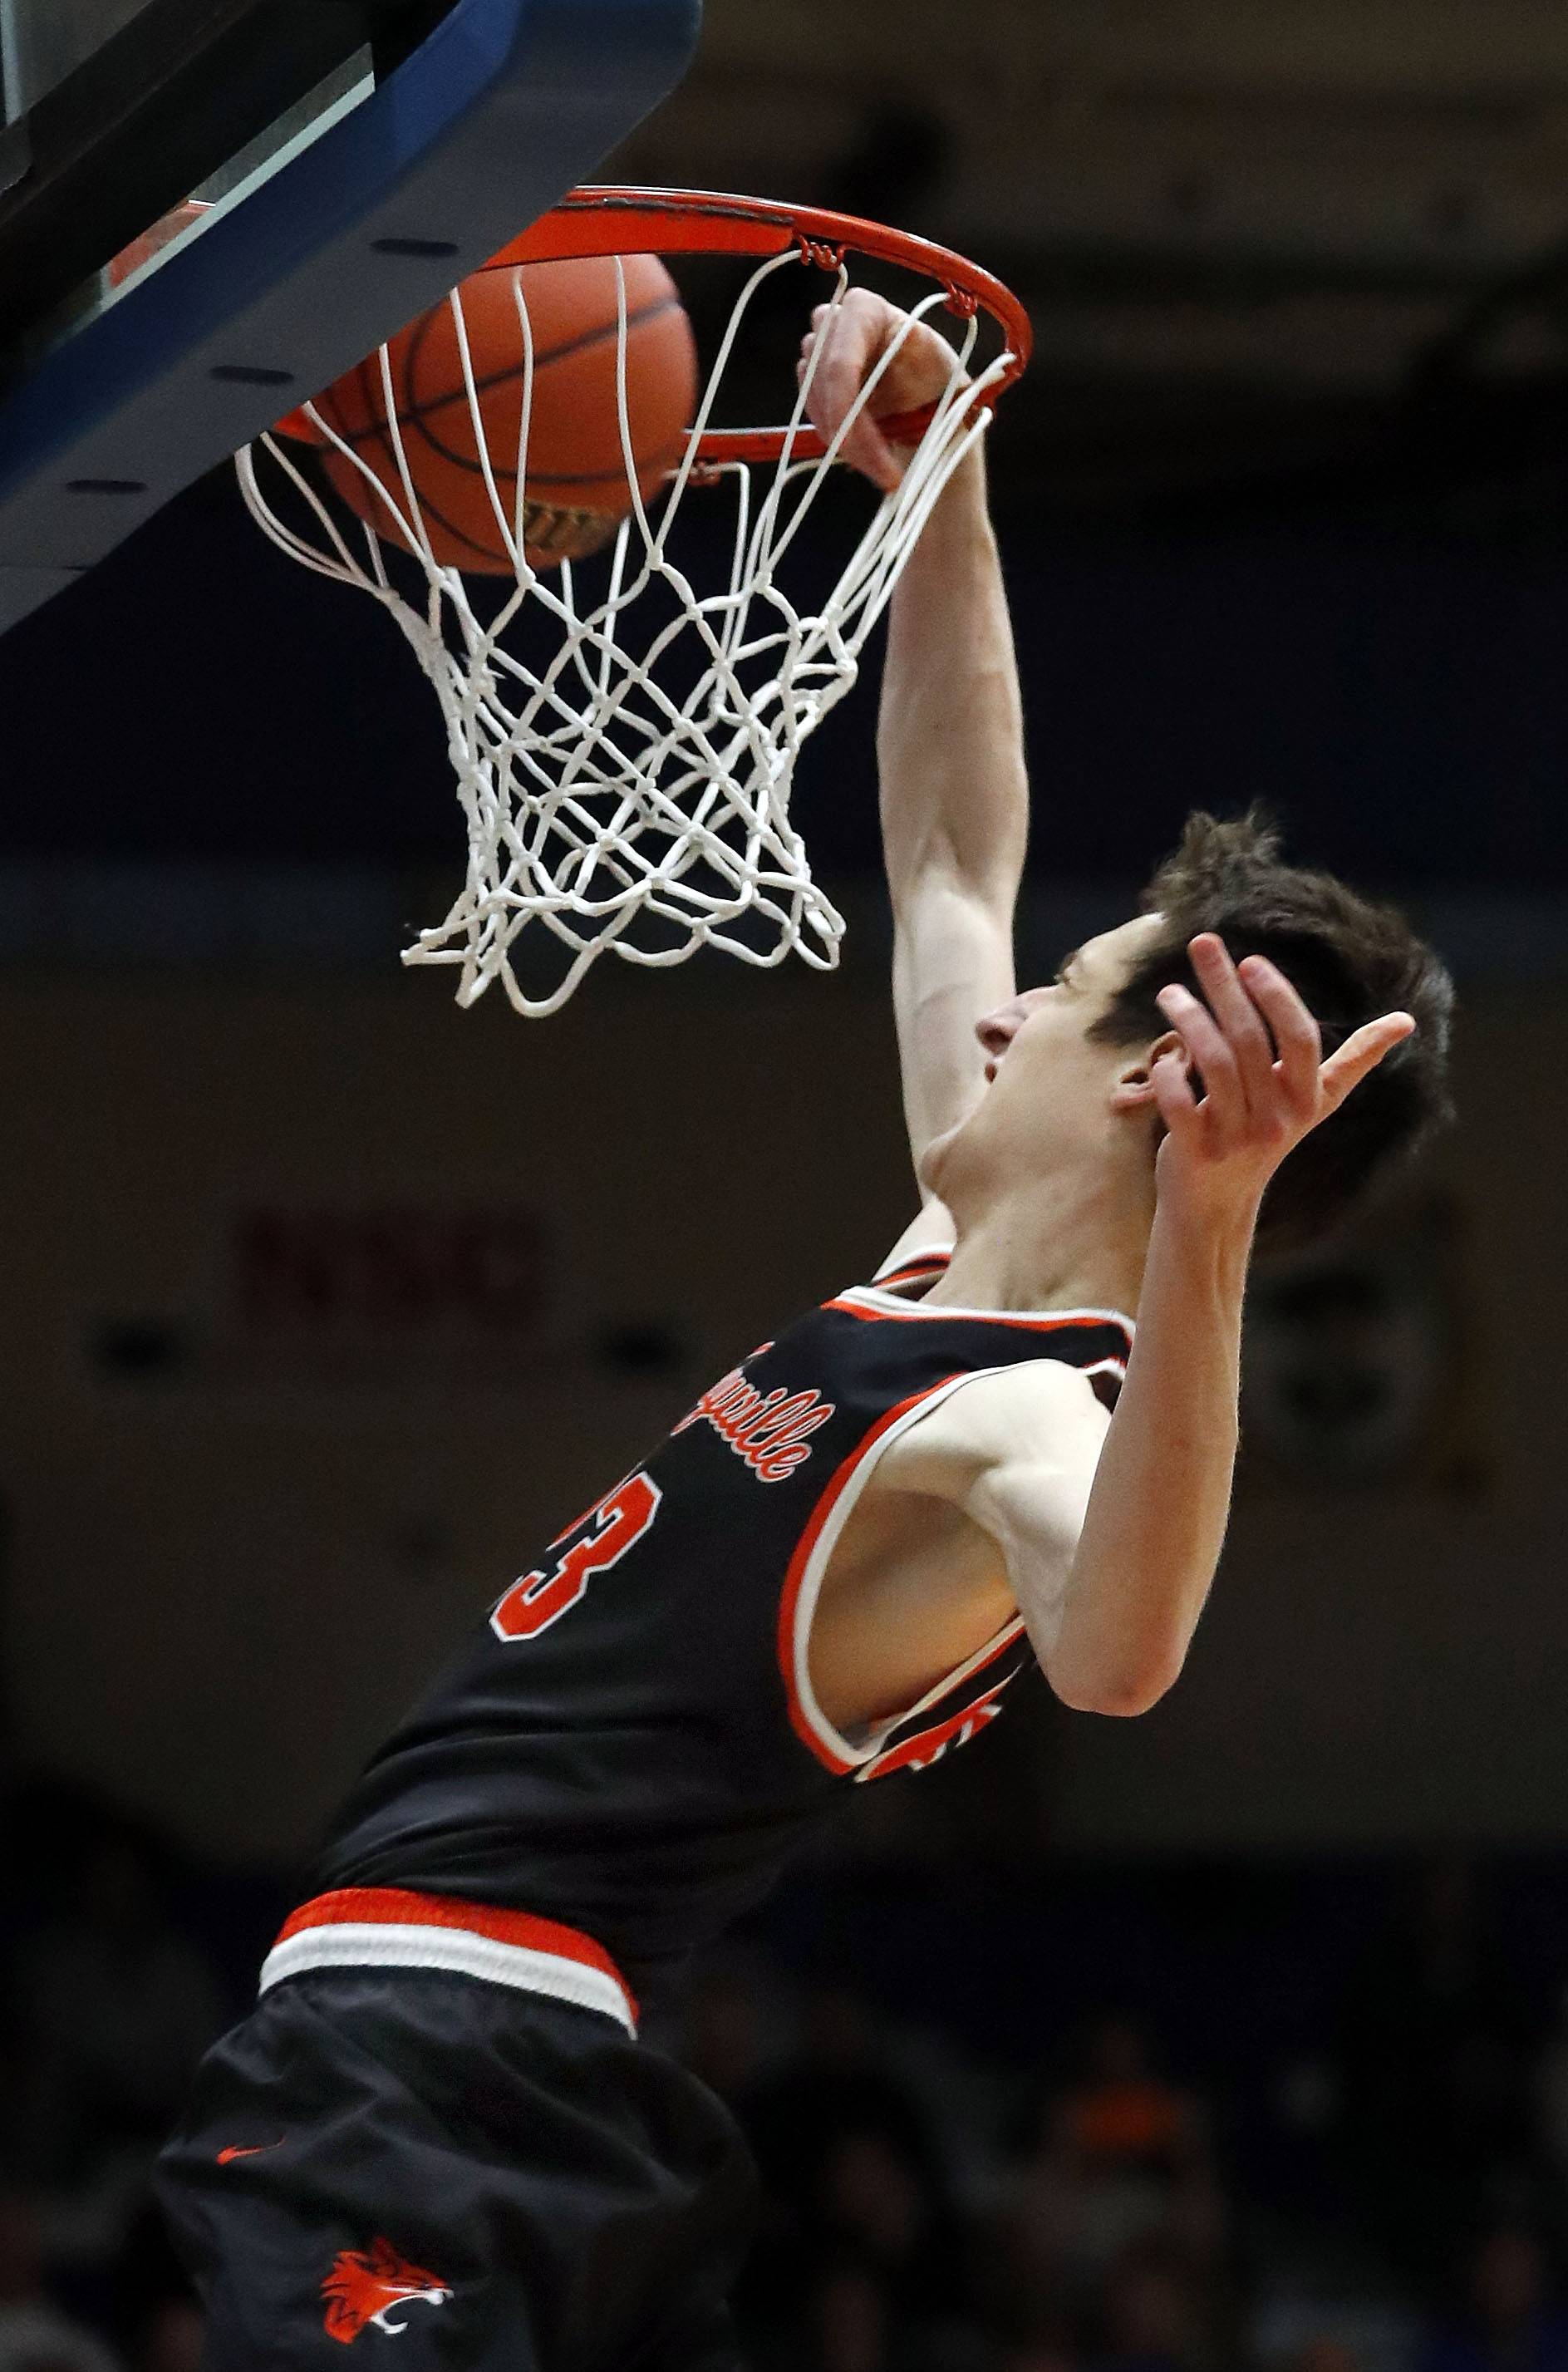 Libertyville's Drew Peterson goes in for a dunk during recent sectional semifinal action at Lake Zurich.